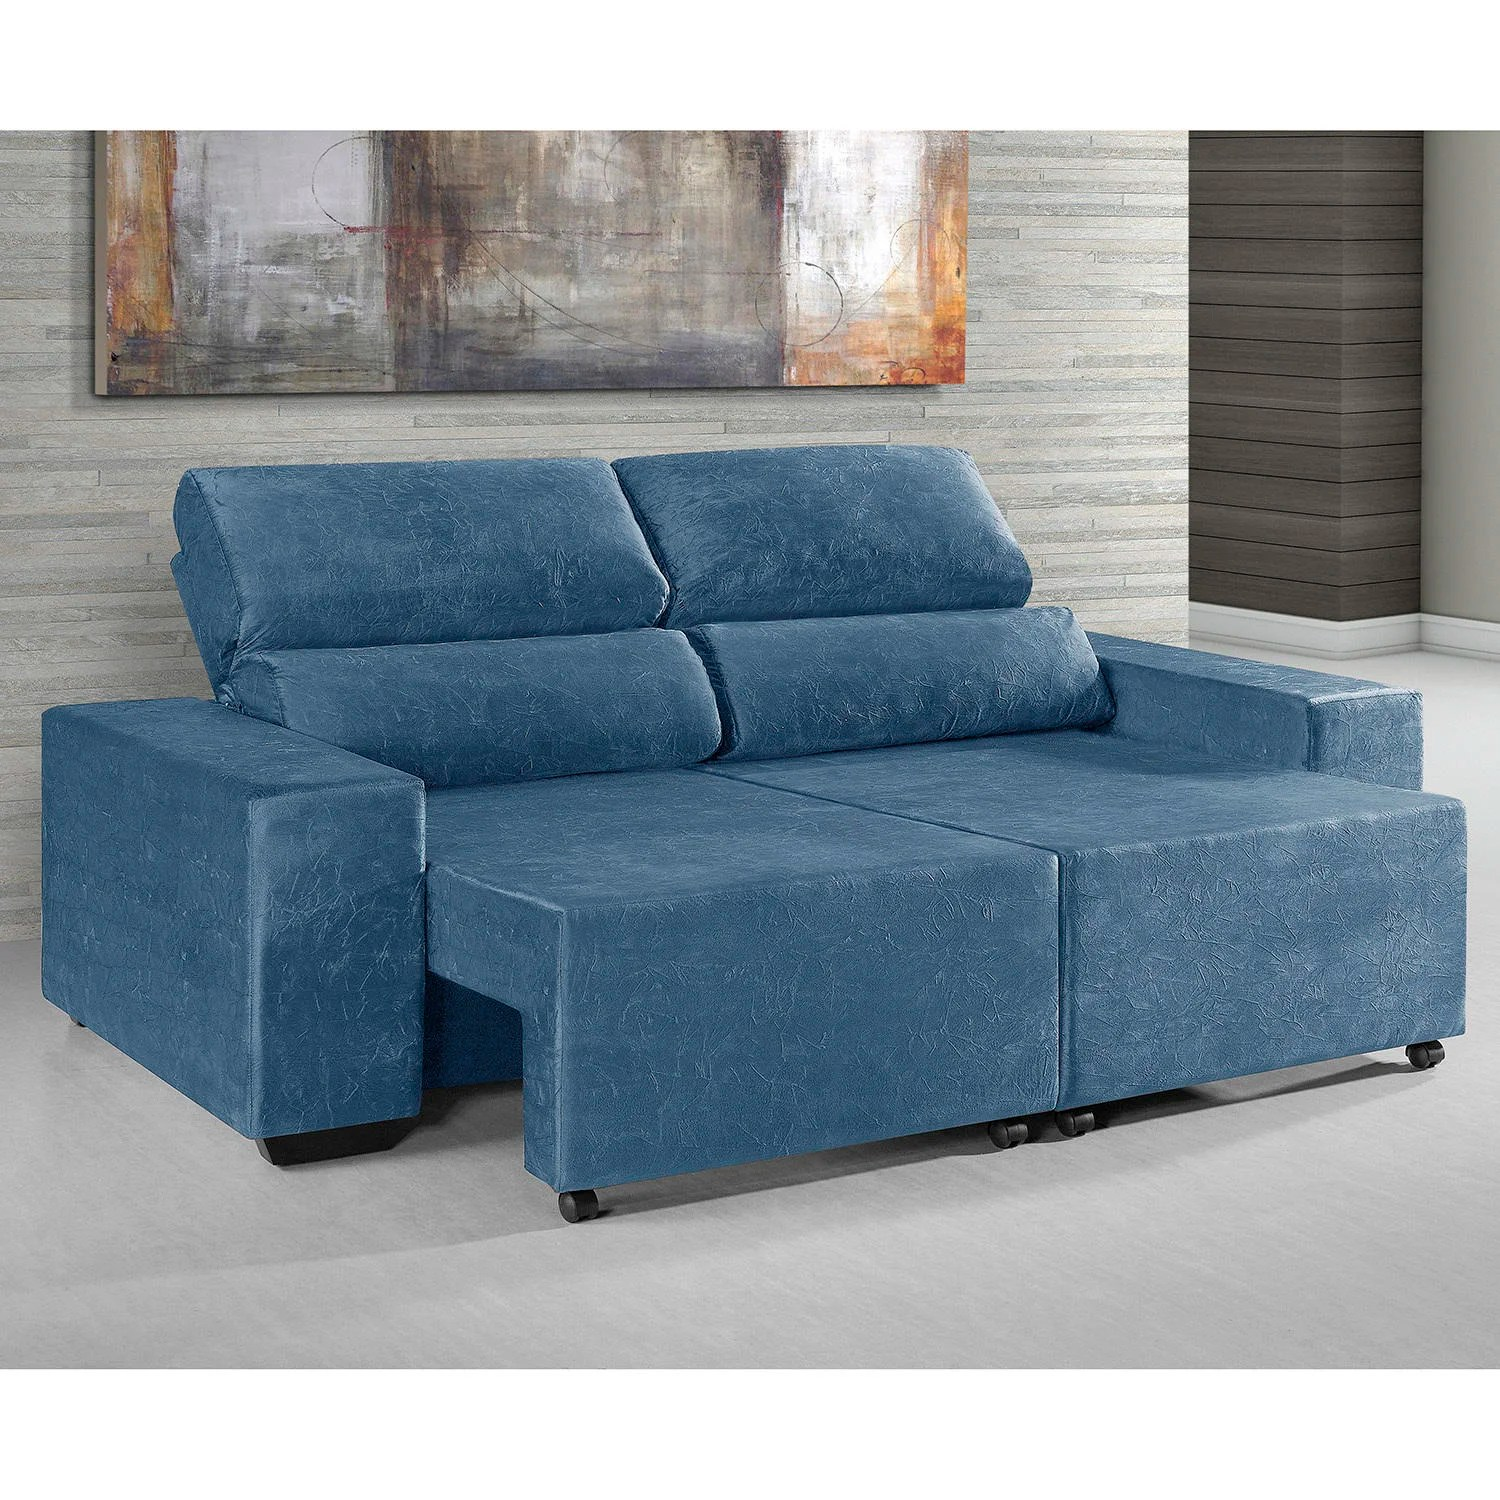 Sofa Retratil E Reclinavel Koerich Sofa Umaflex Azul